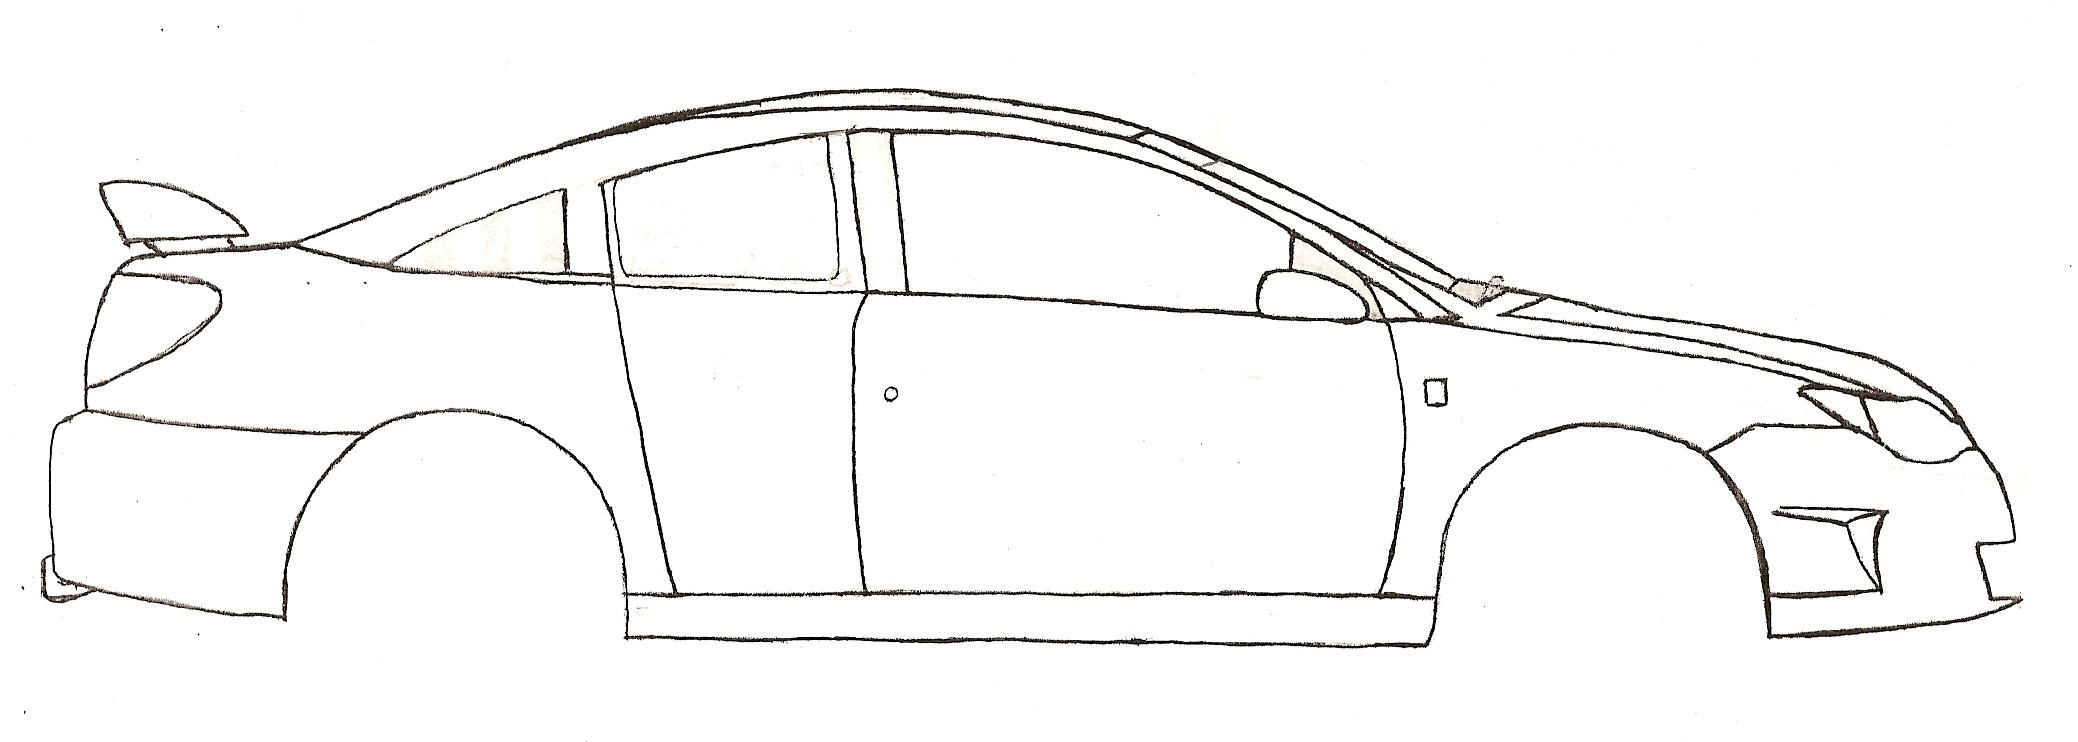 Car Coloring Pages Side View : Muscle car drawings side view sketch coloring page